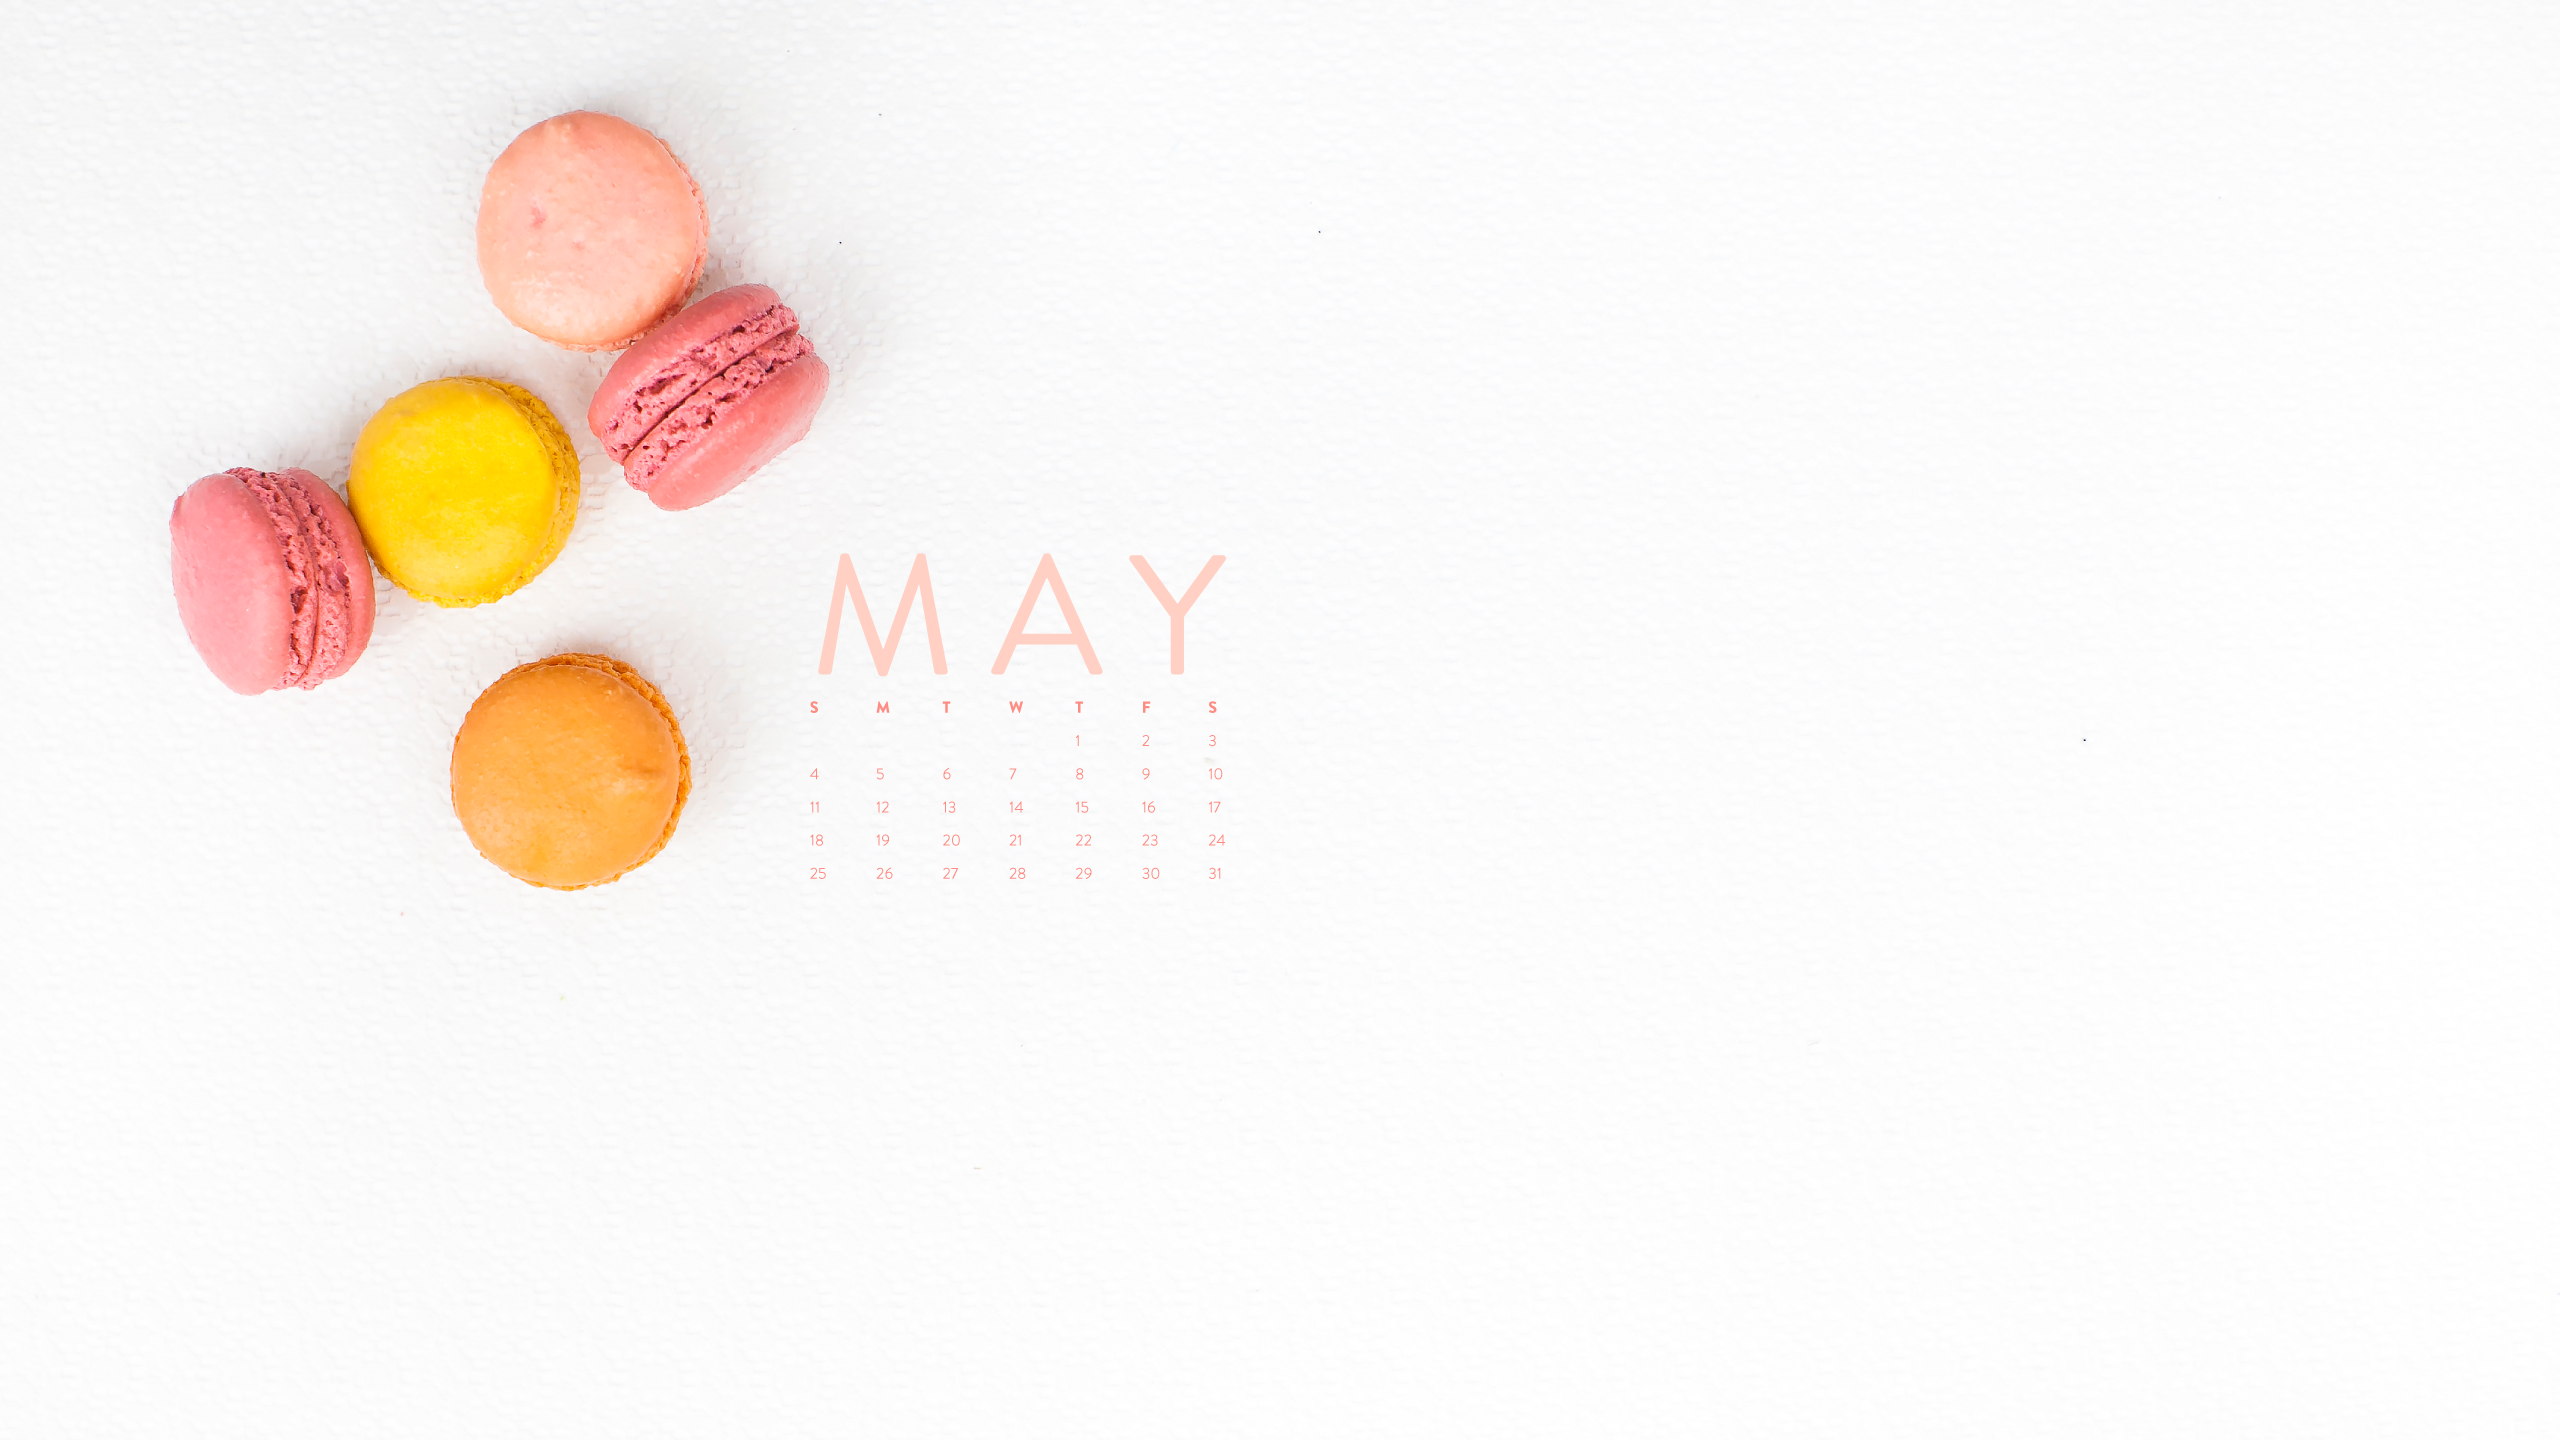 Happy May Desktop Calendar IPhone Wallpaper Ashlee Proffitt 2560x1440